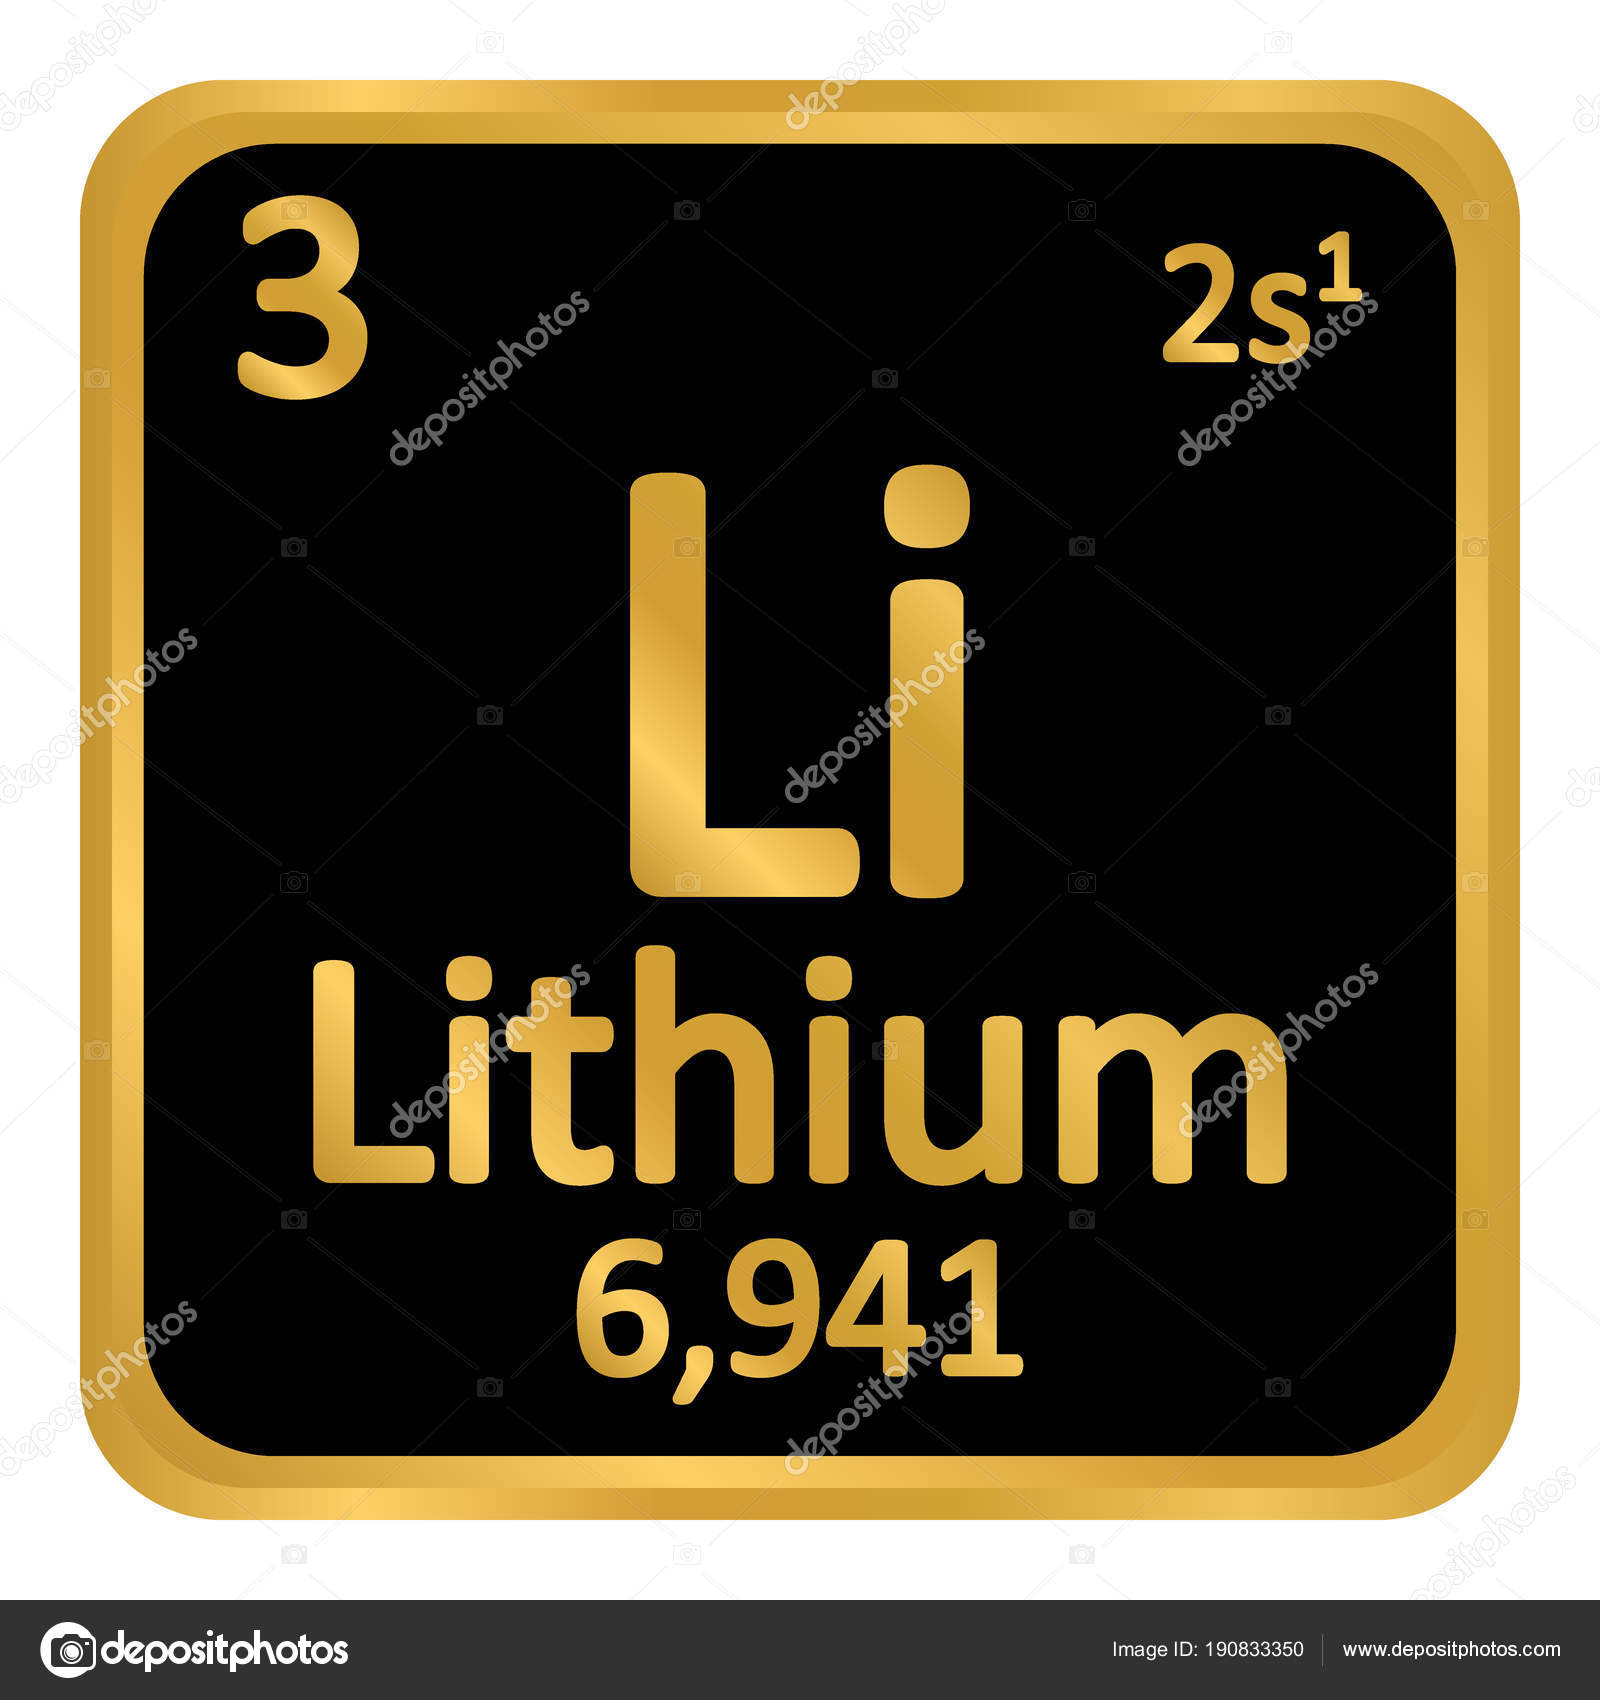 Periodic table element lithium icon stock vector konstsem periodic table element lithium icon stock vector urtaz Gallery